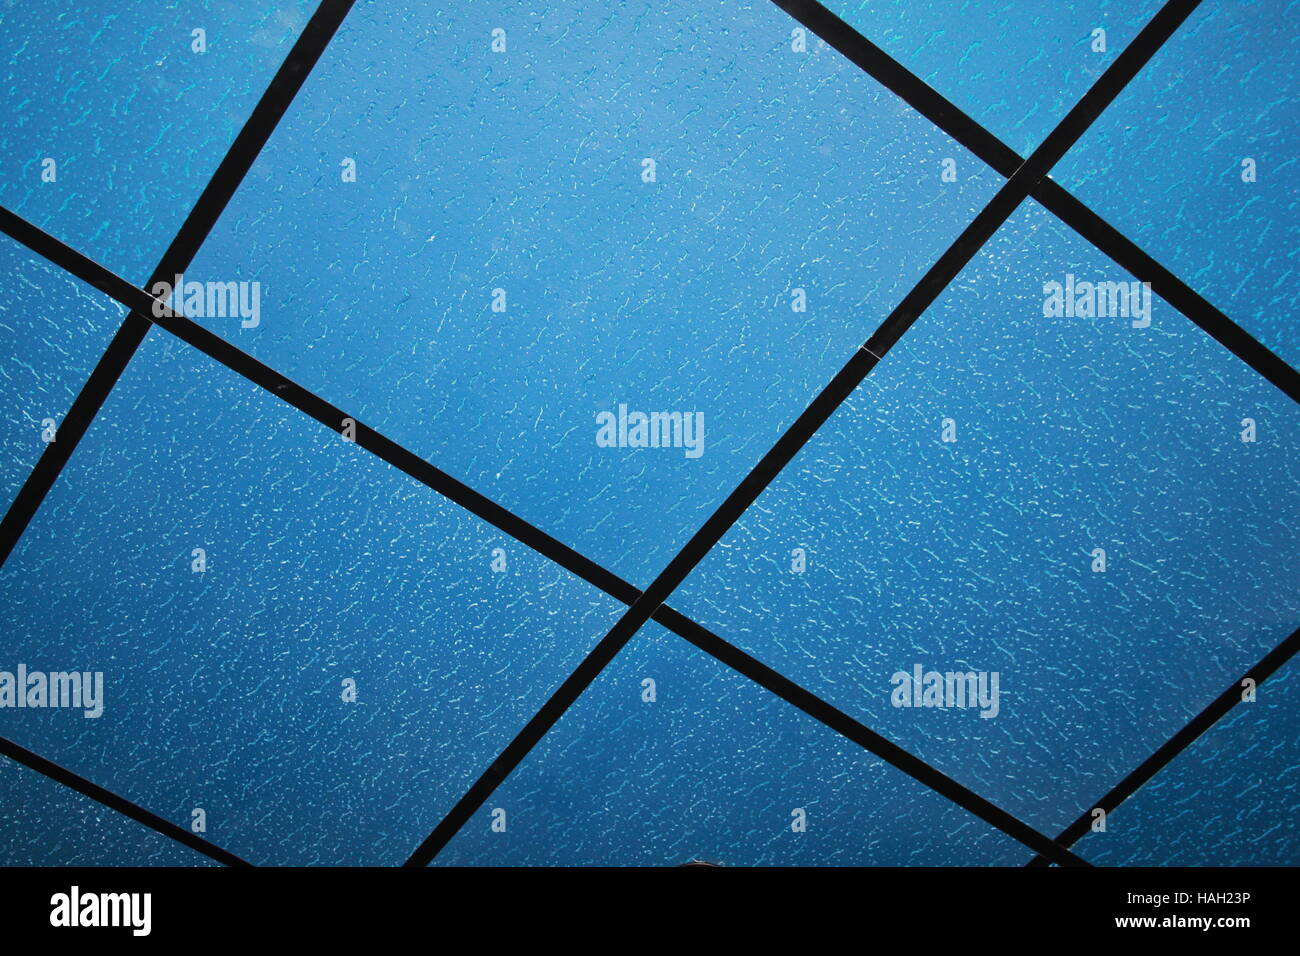 https www alamy com stock photo blue ceiling tiles separated by a grid of black dividers 126993994 html